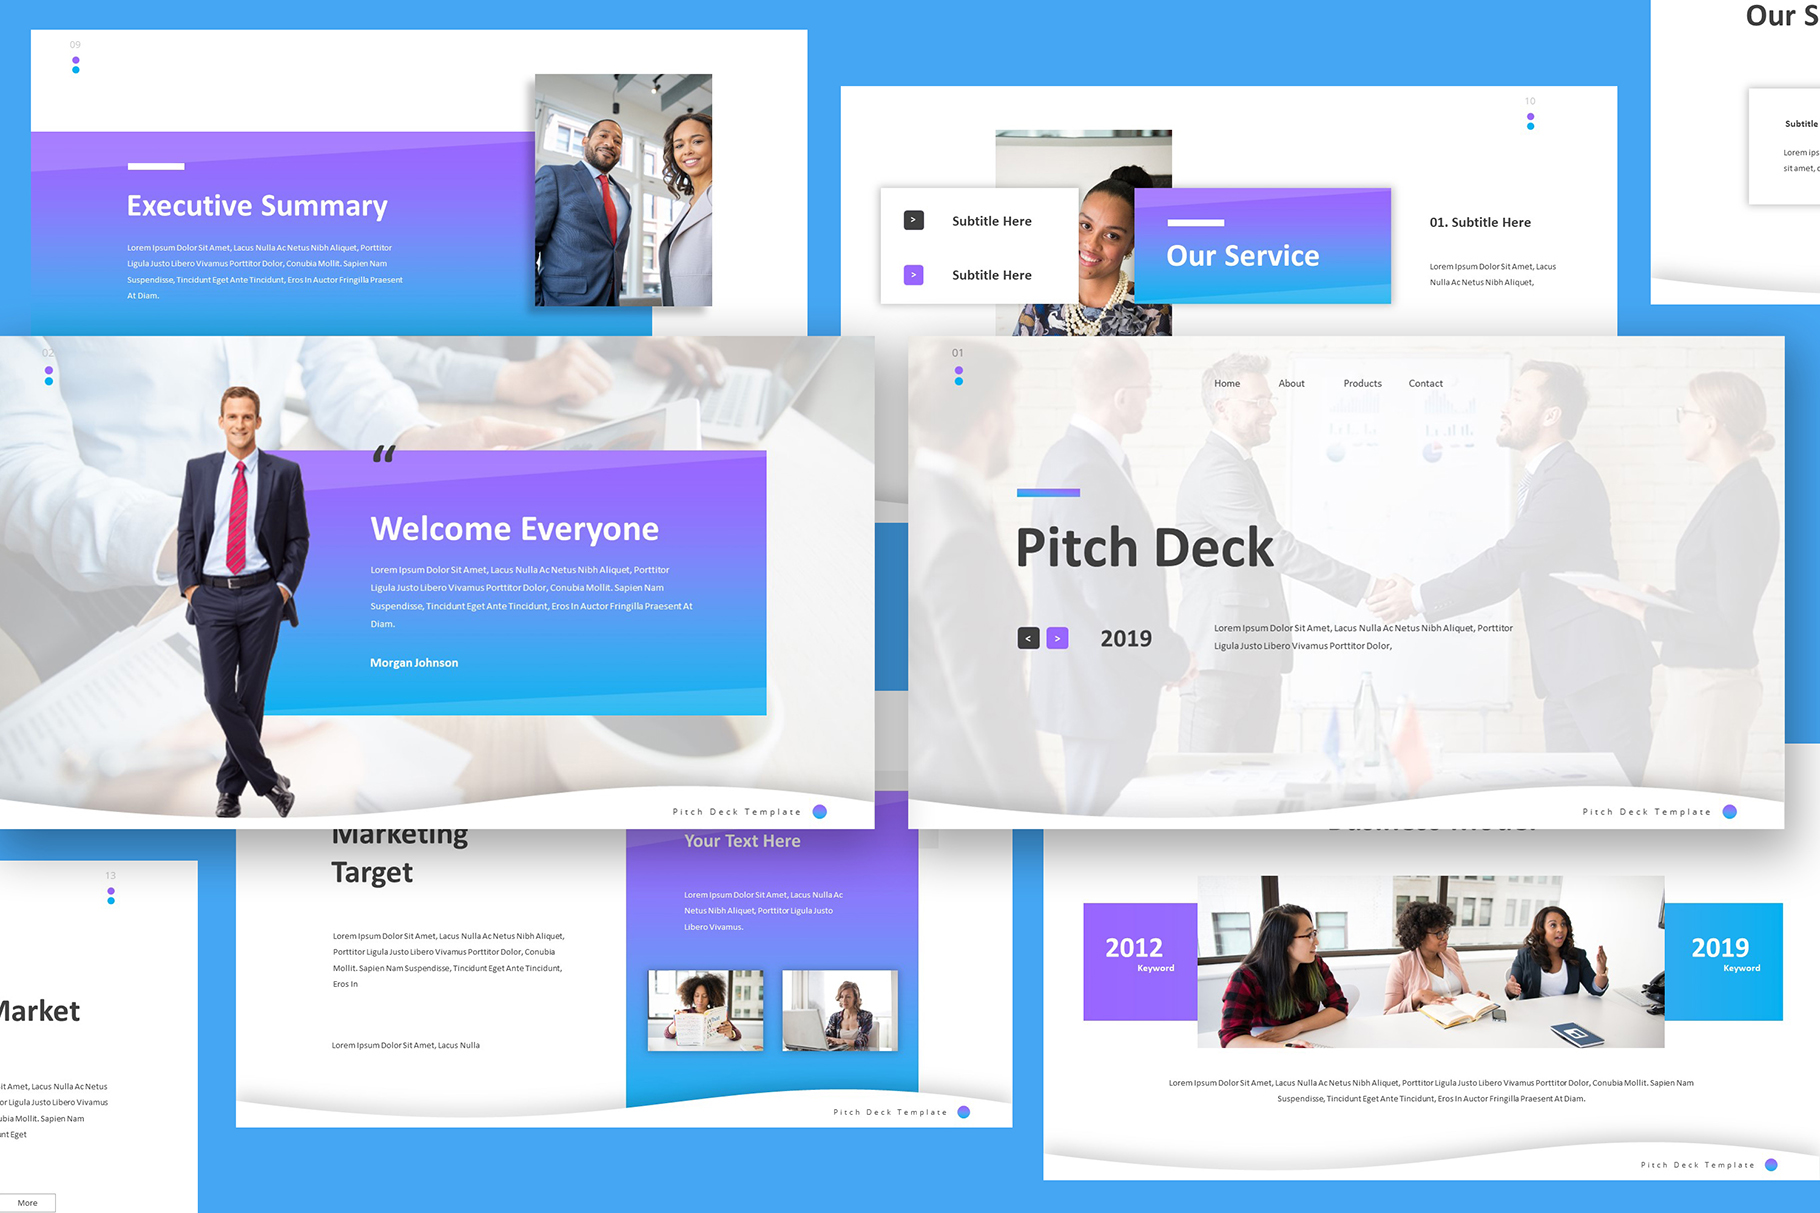 Pitch Deck Google Slides Template example image 3